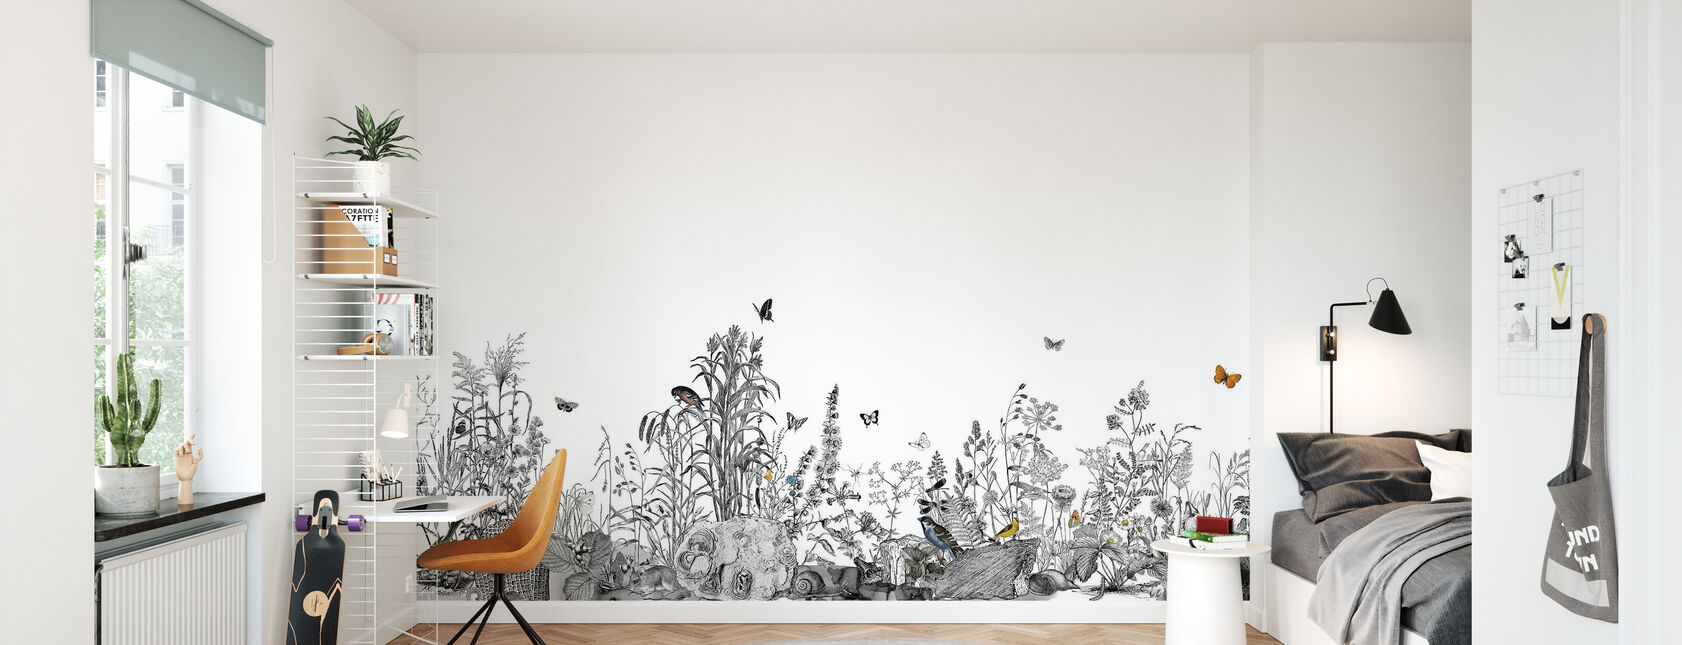 Snail Trail XL - Wallpaper - Kids Room